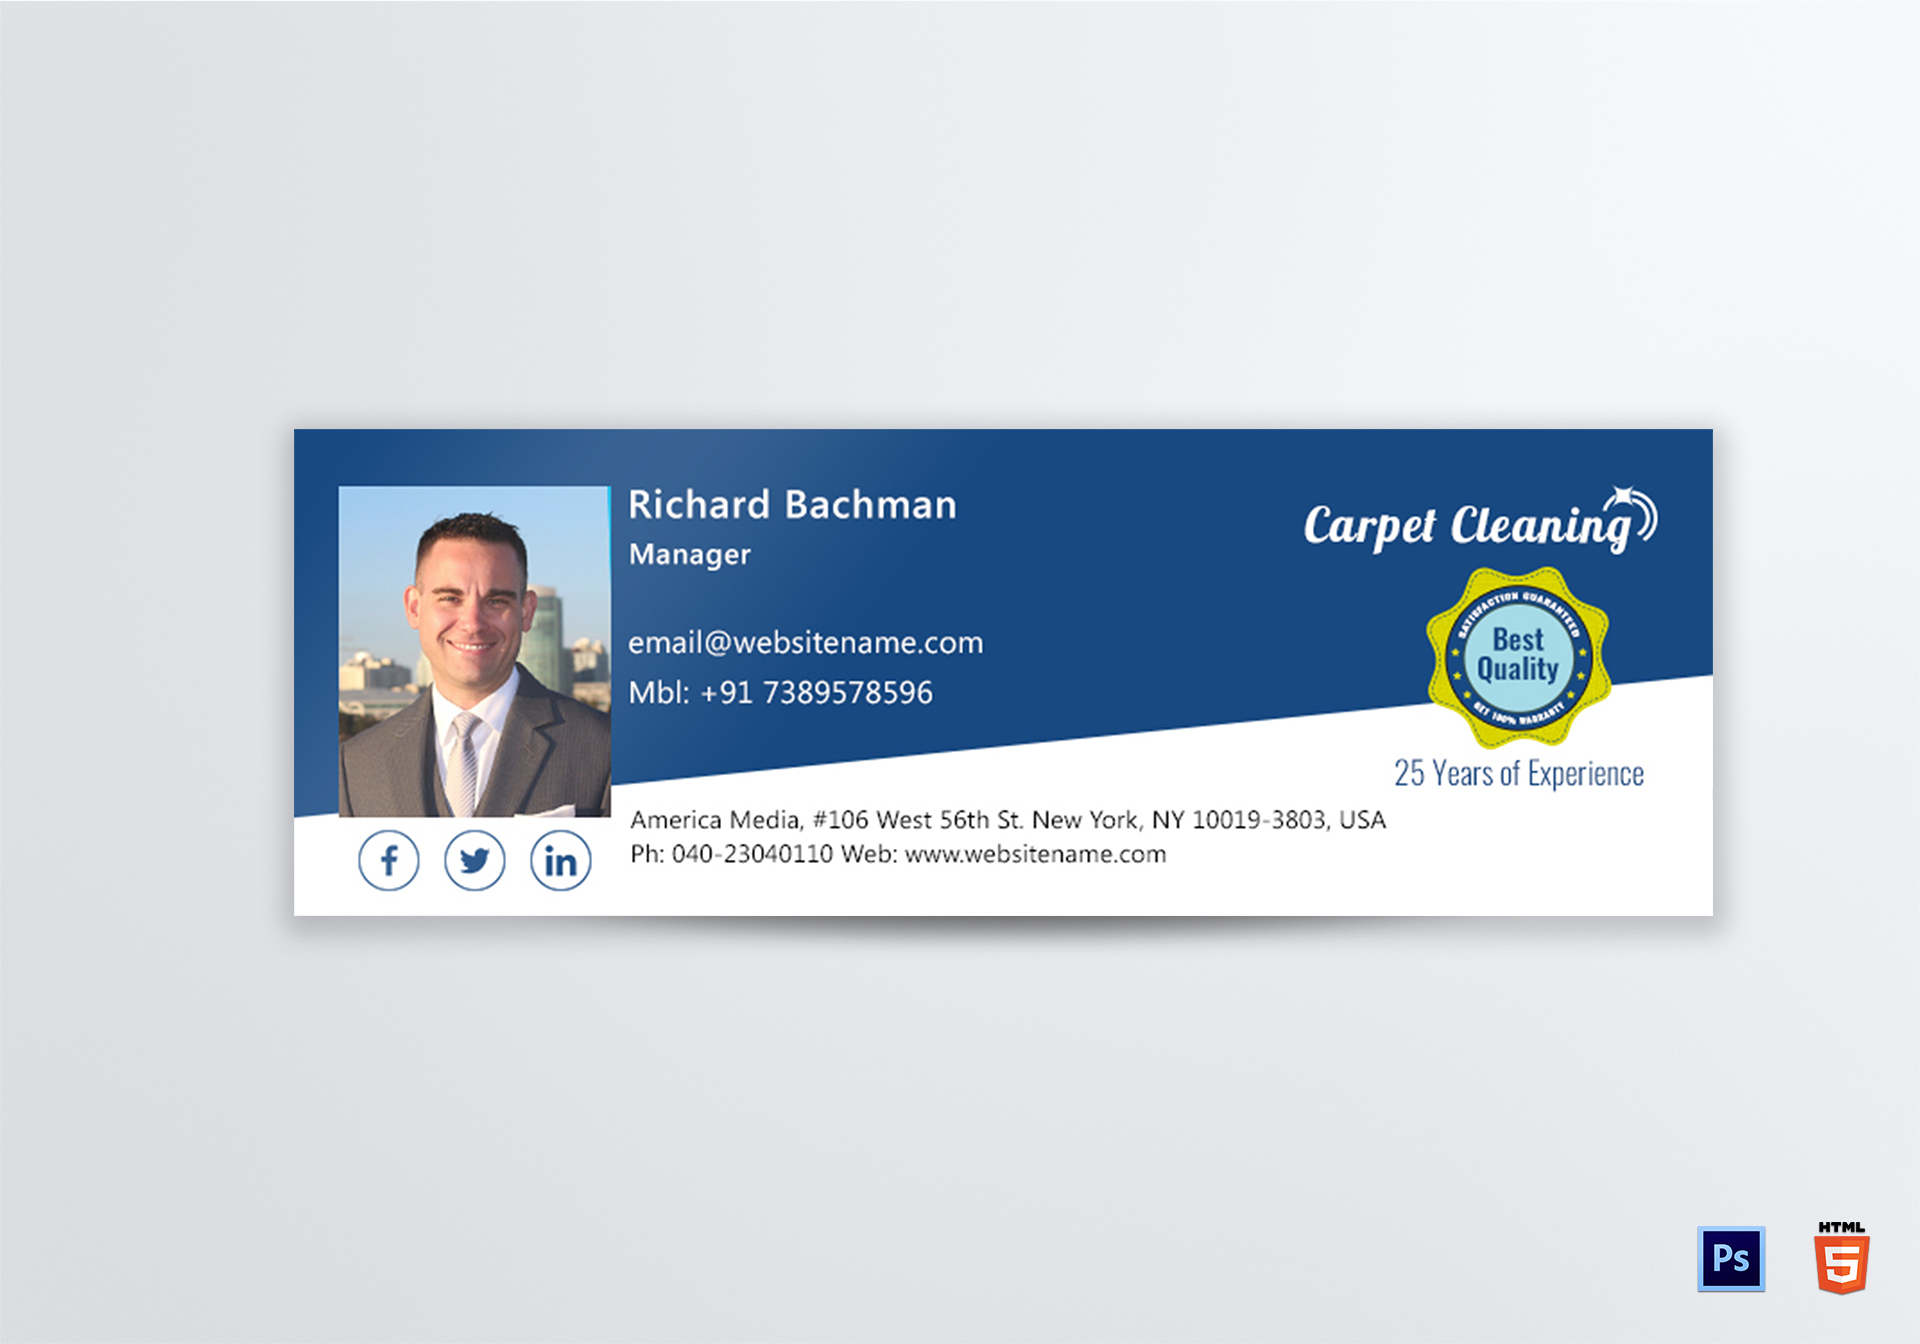 Carpet Cleaning Email Signature